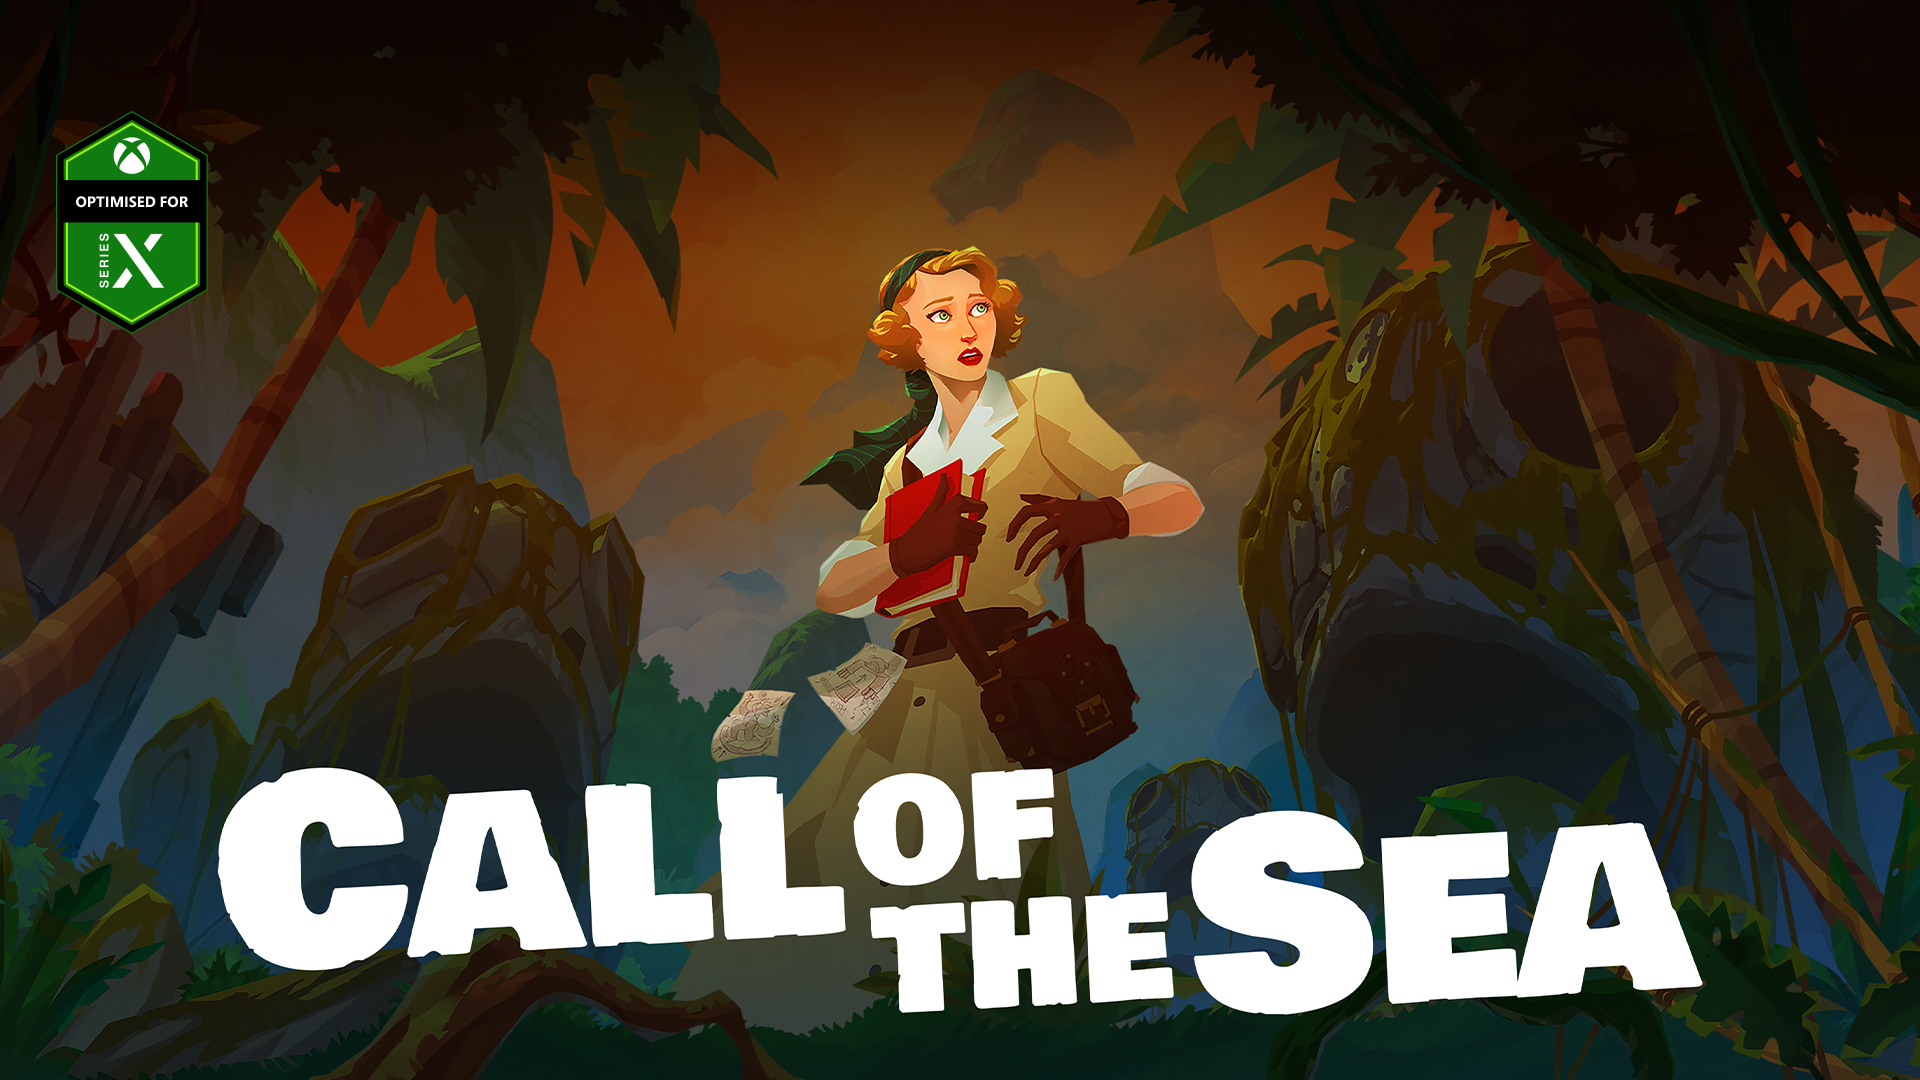 Optimised for series X logo, Call of the Sea, Norah in a jungle